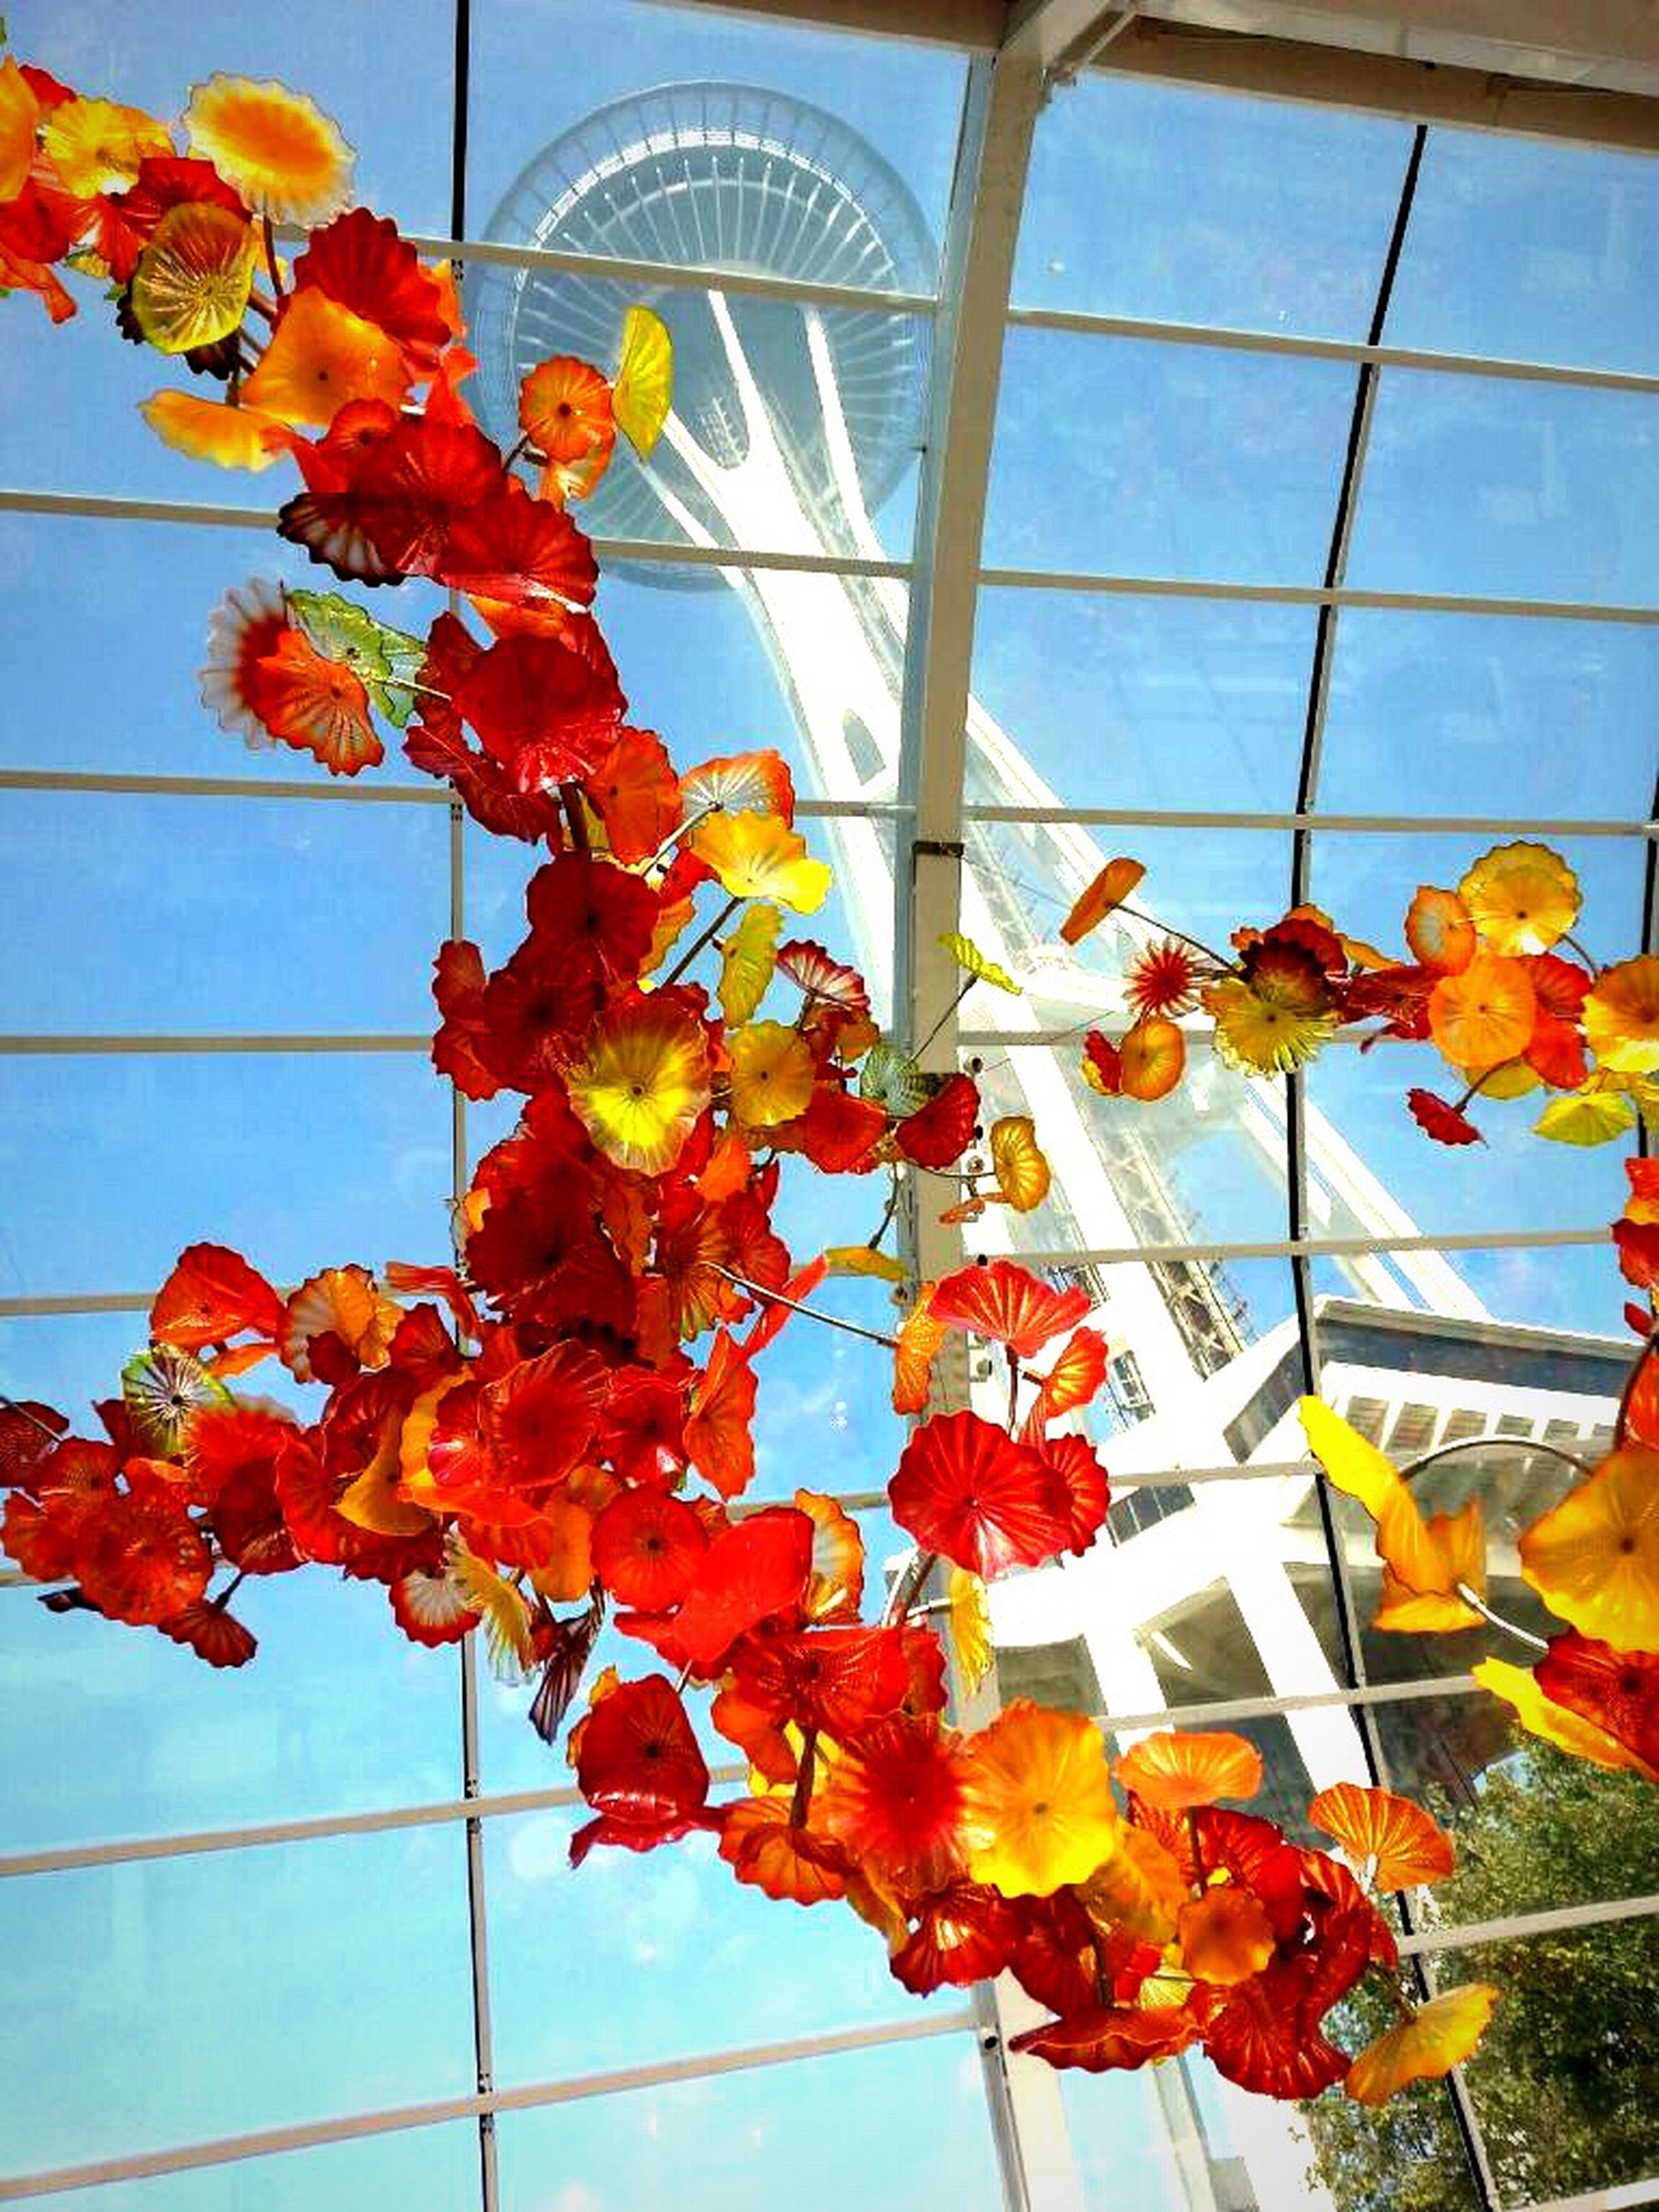 flower, red, low angle view, freshness, growth, plant, indoors, fragility, day, built structure, nature, blue, no people, wall - building feature, beauty in nature, orange color, close-up, architecture, hanging